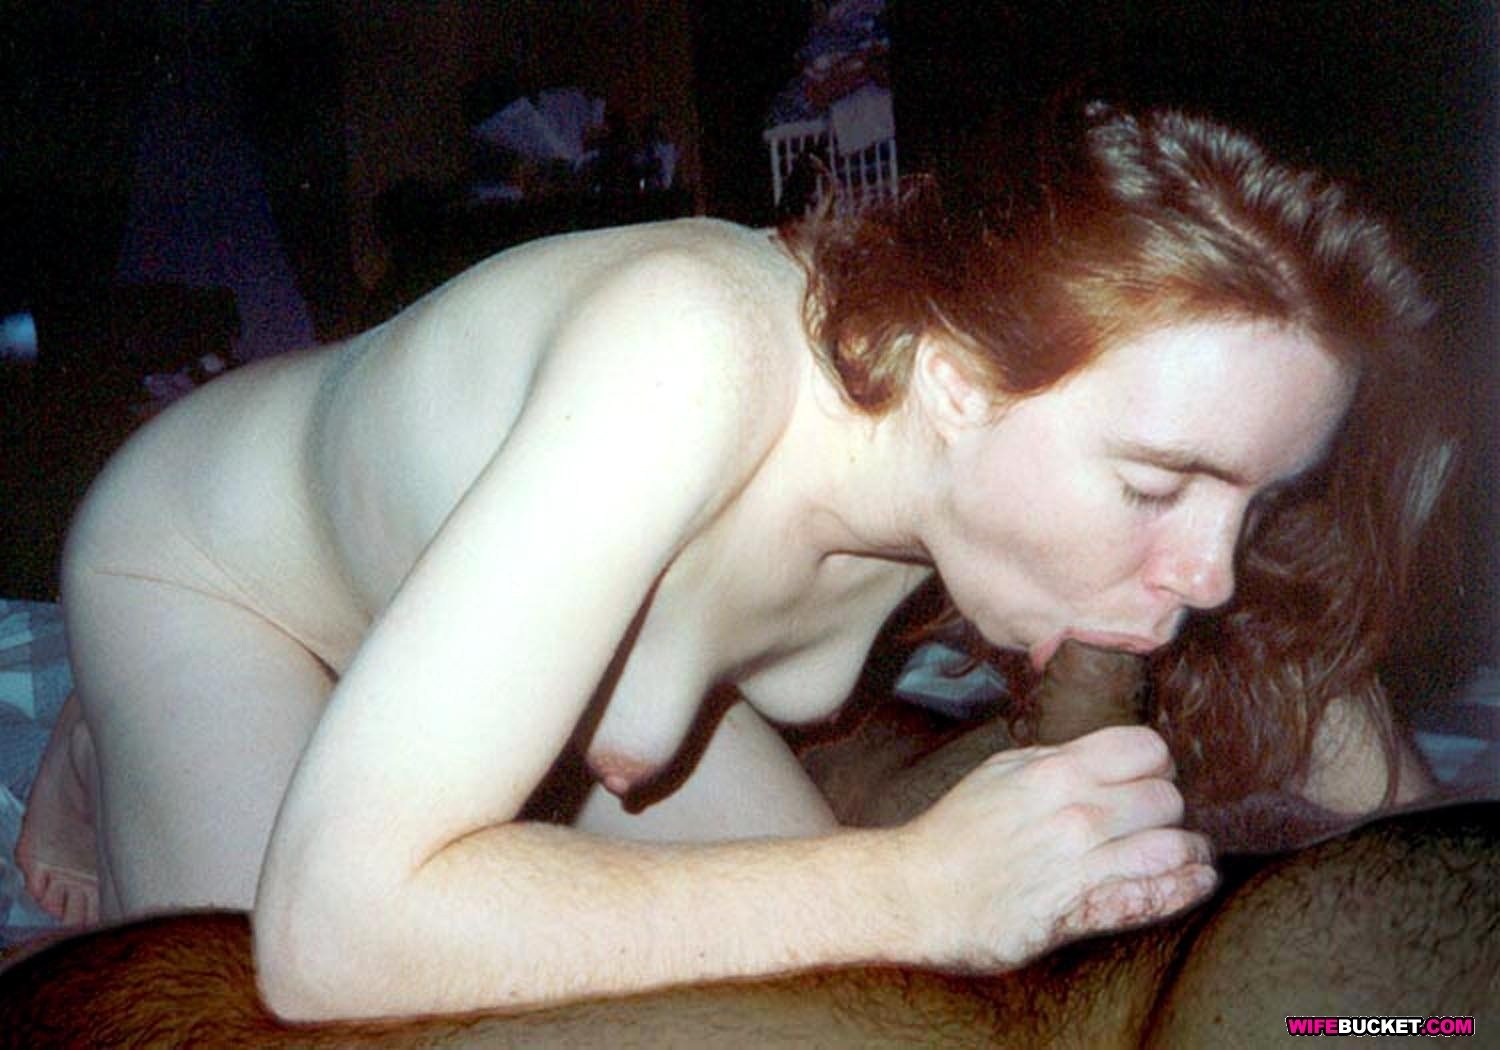 Skirts and panties amateurs homemade husband and wife sex videos